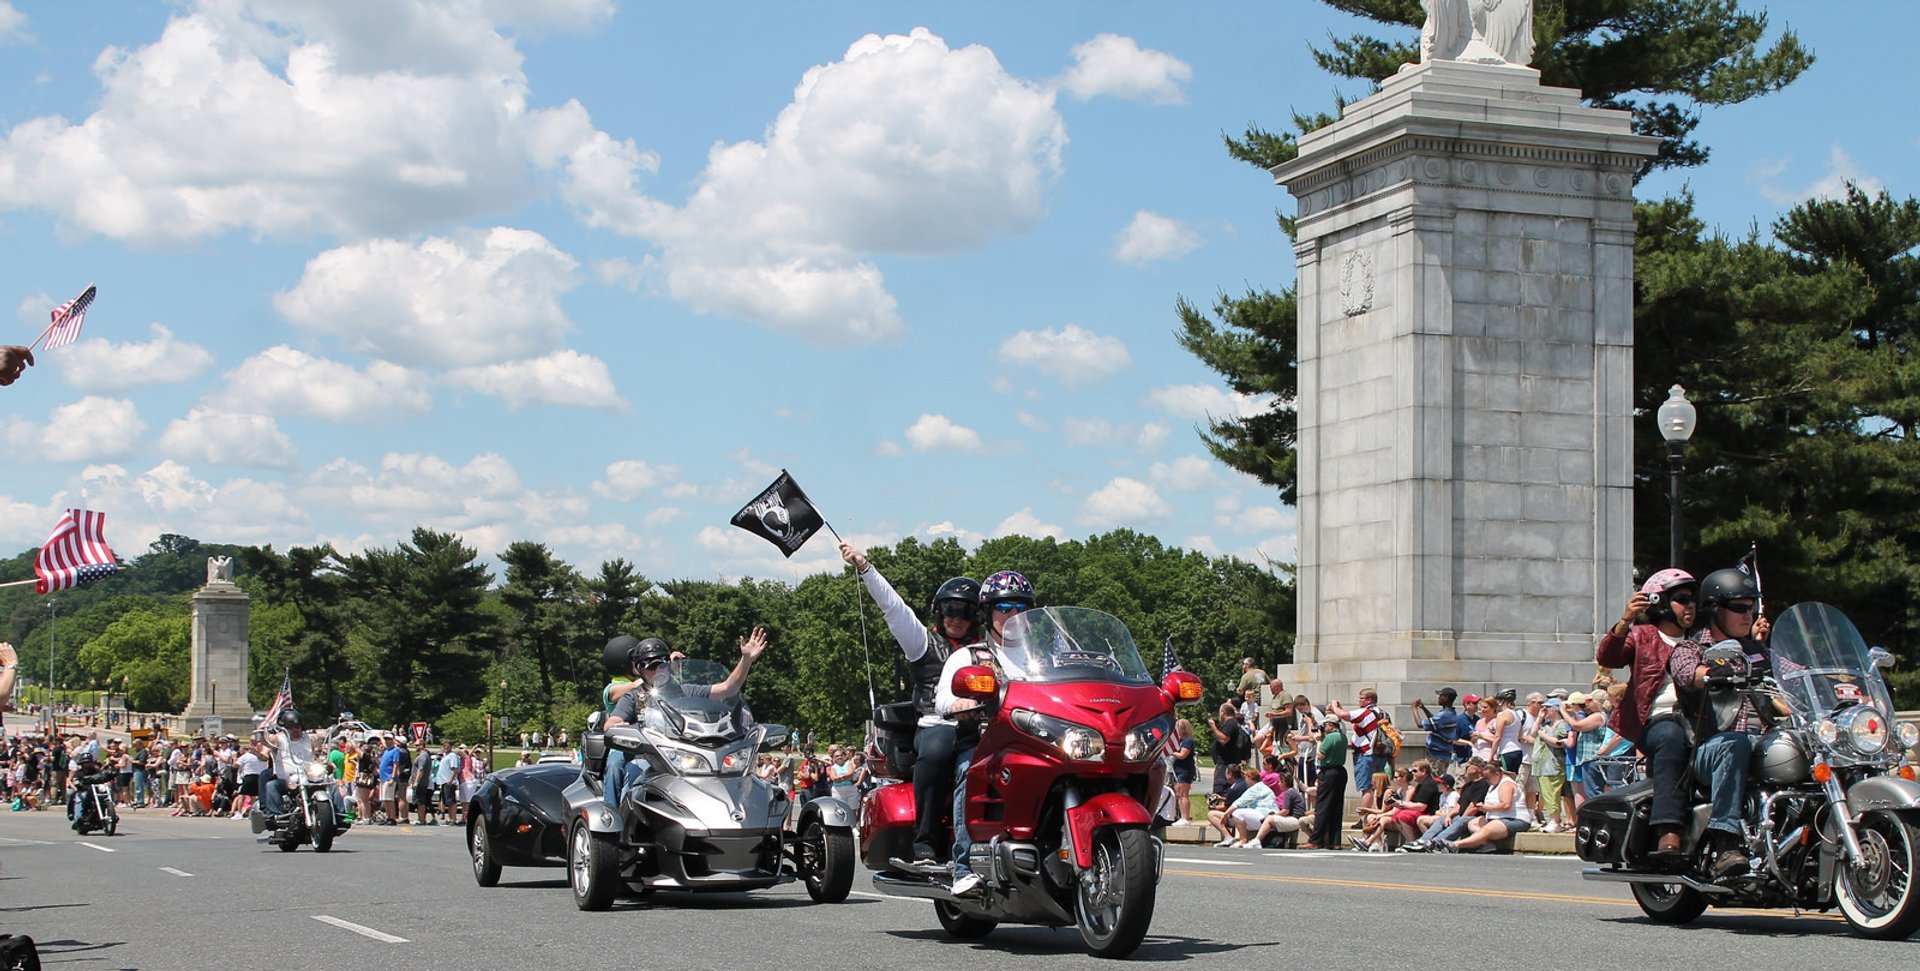 Best time for Rolling Thunder 'Ride for Freedom' in Washington, D.C. 2019